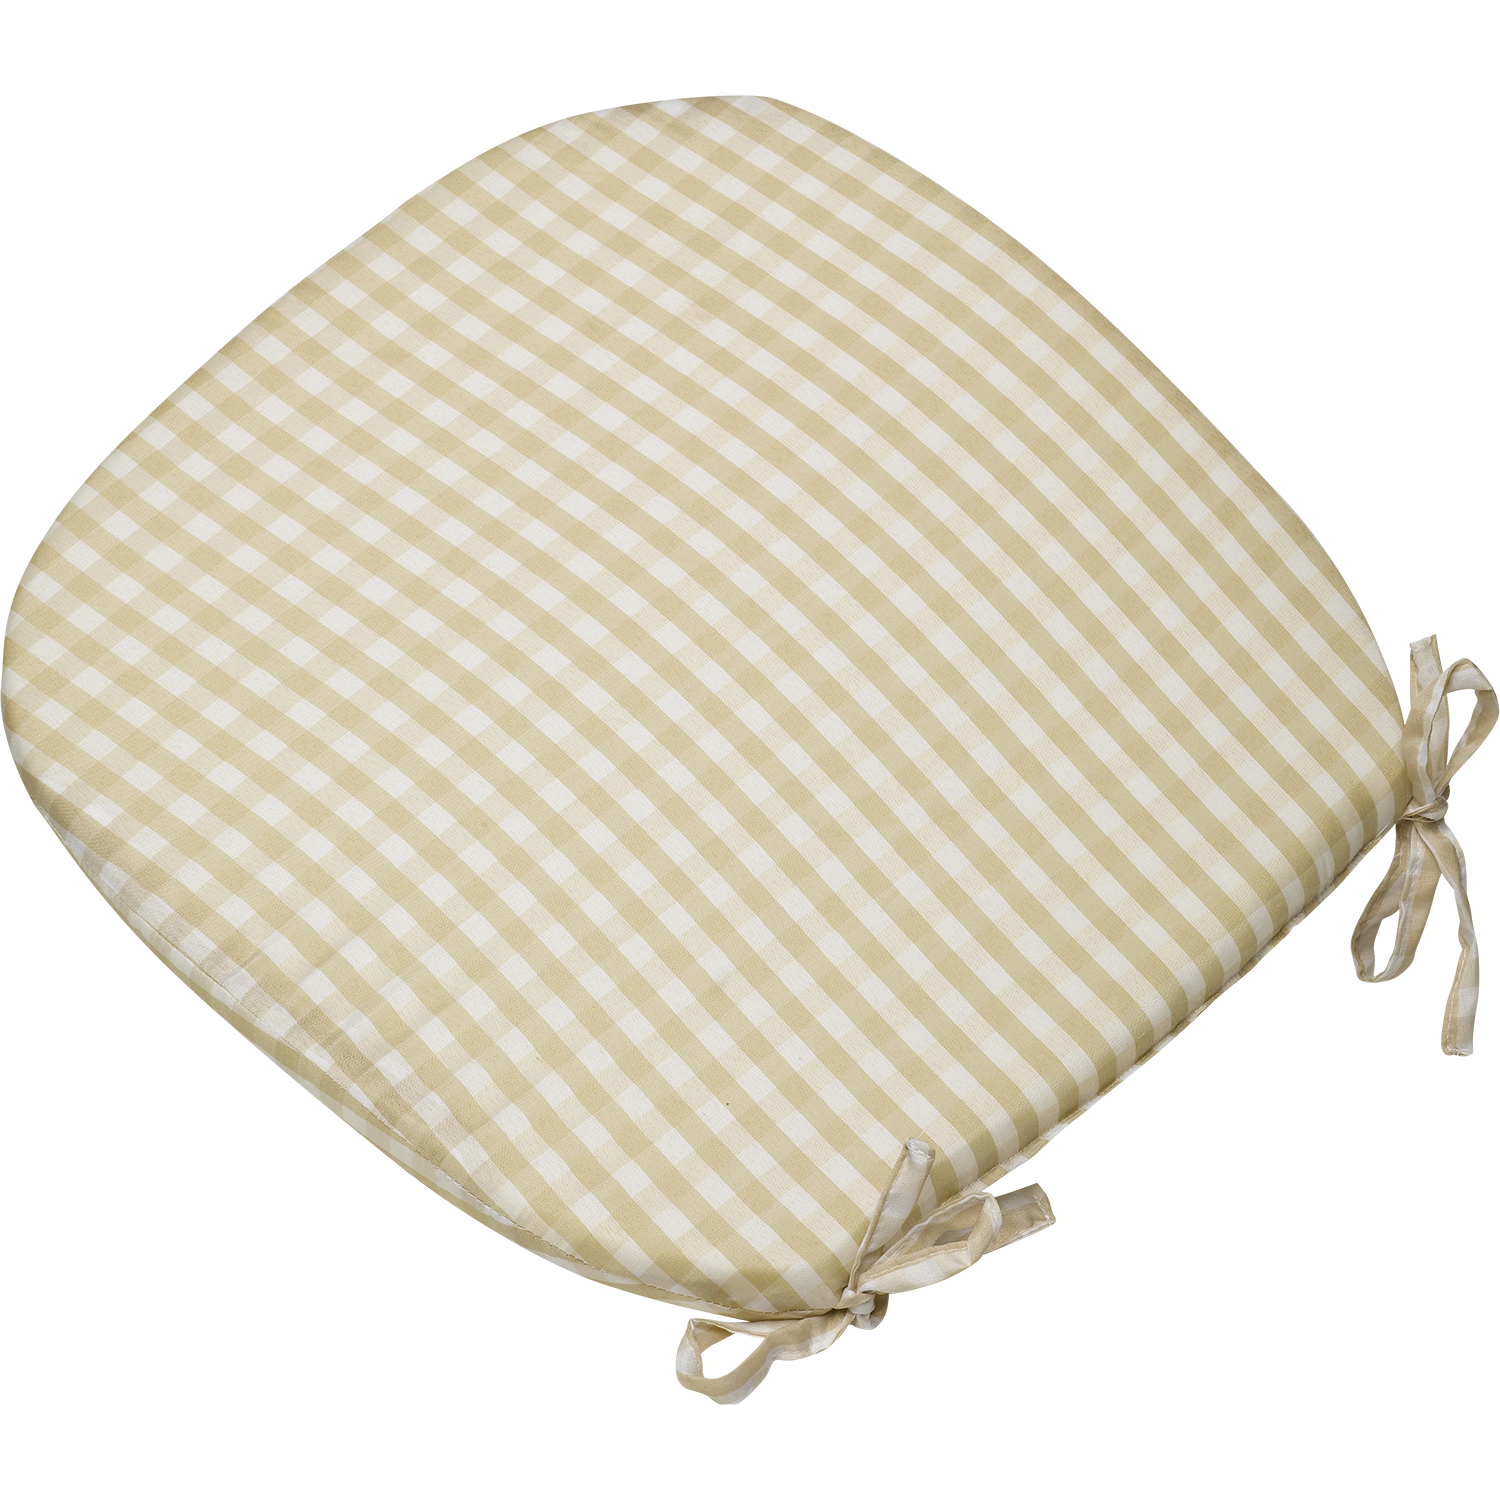 gingham kitchen chair cushions rKSfaFBMGKPSPJ kitchen chair seat cushions Seatpad Dining Kitchen Garden Chair Seat